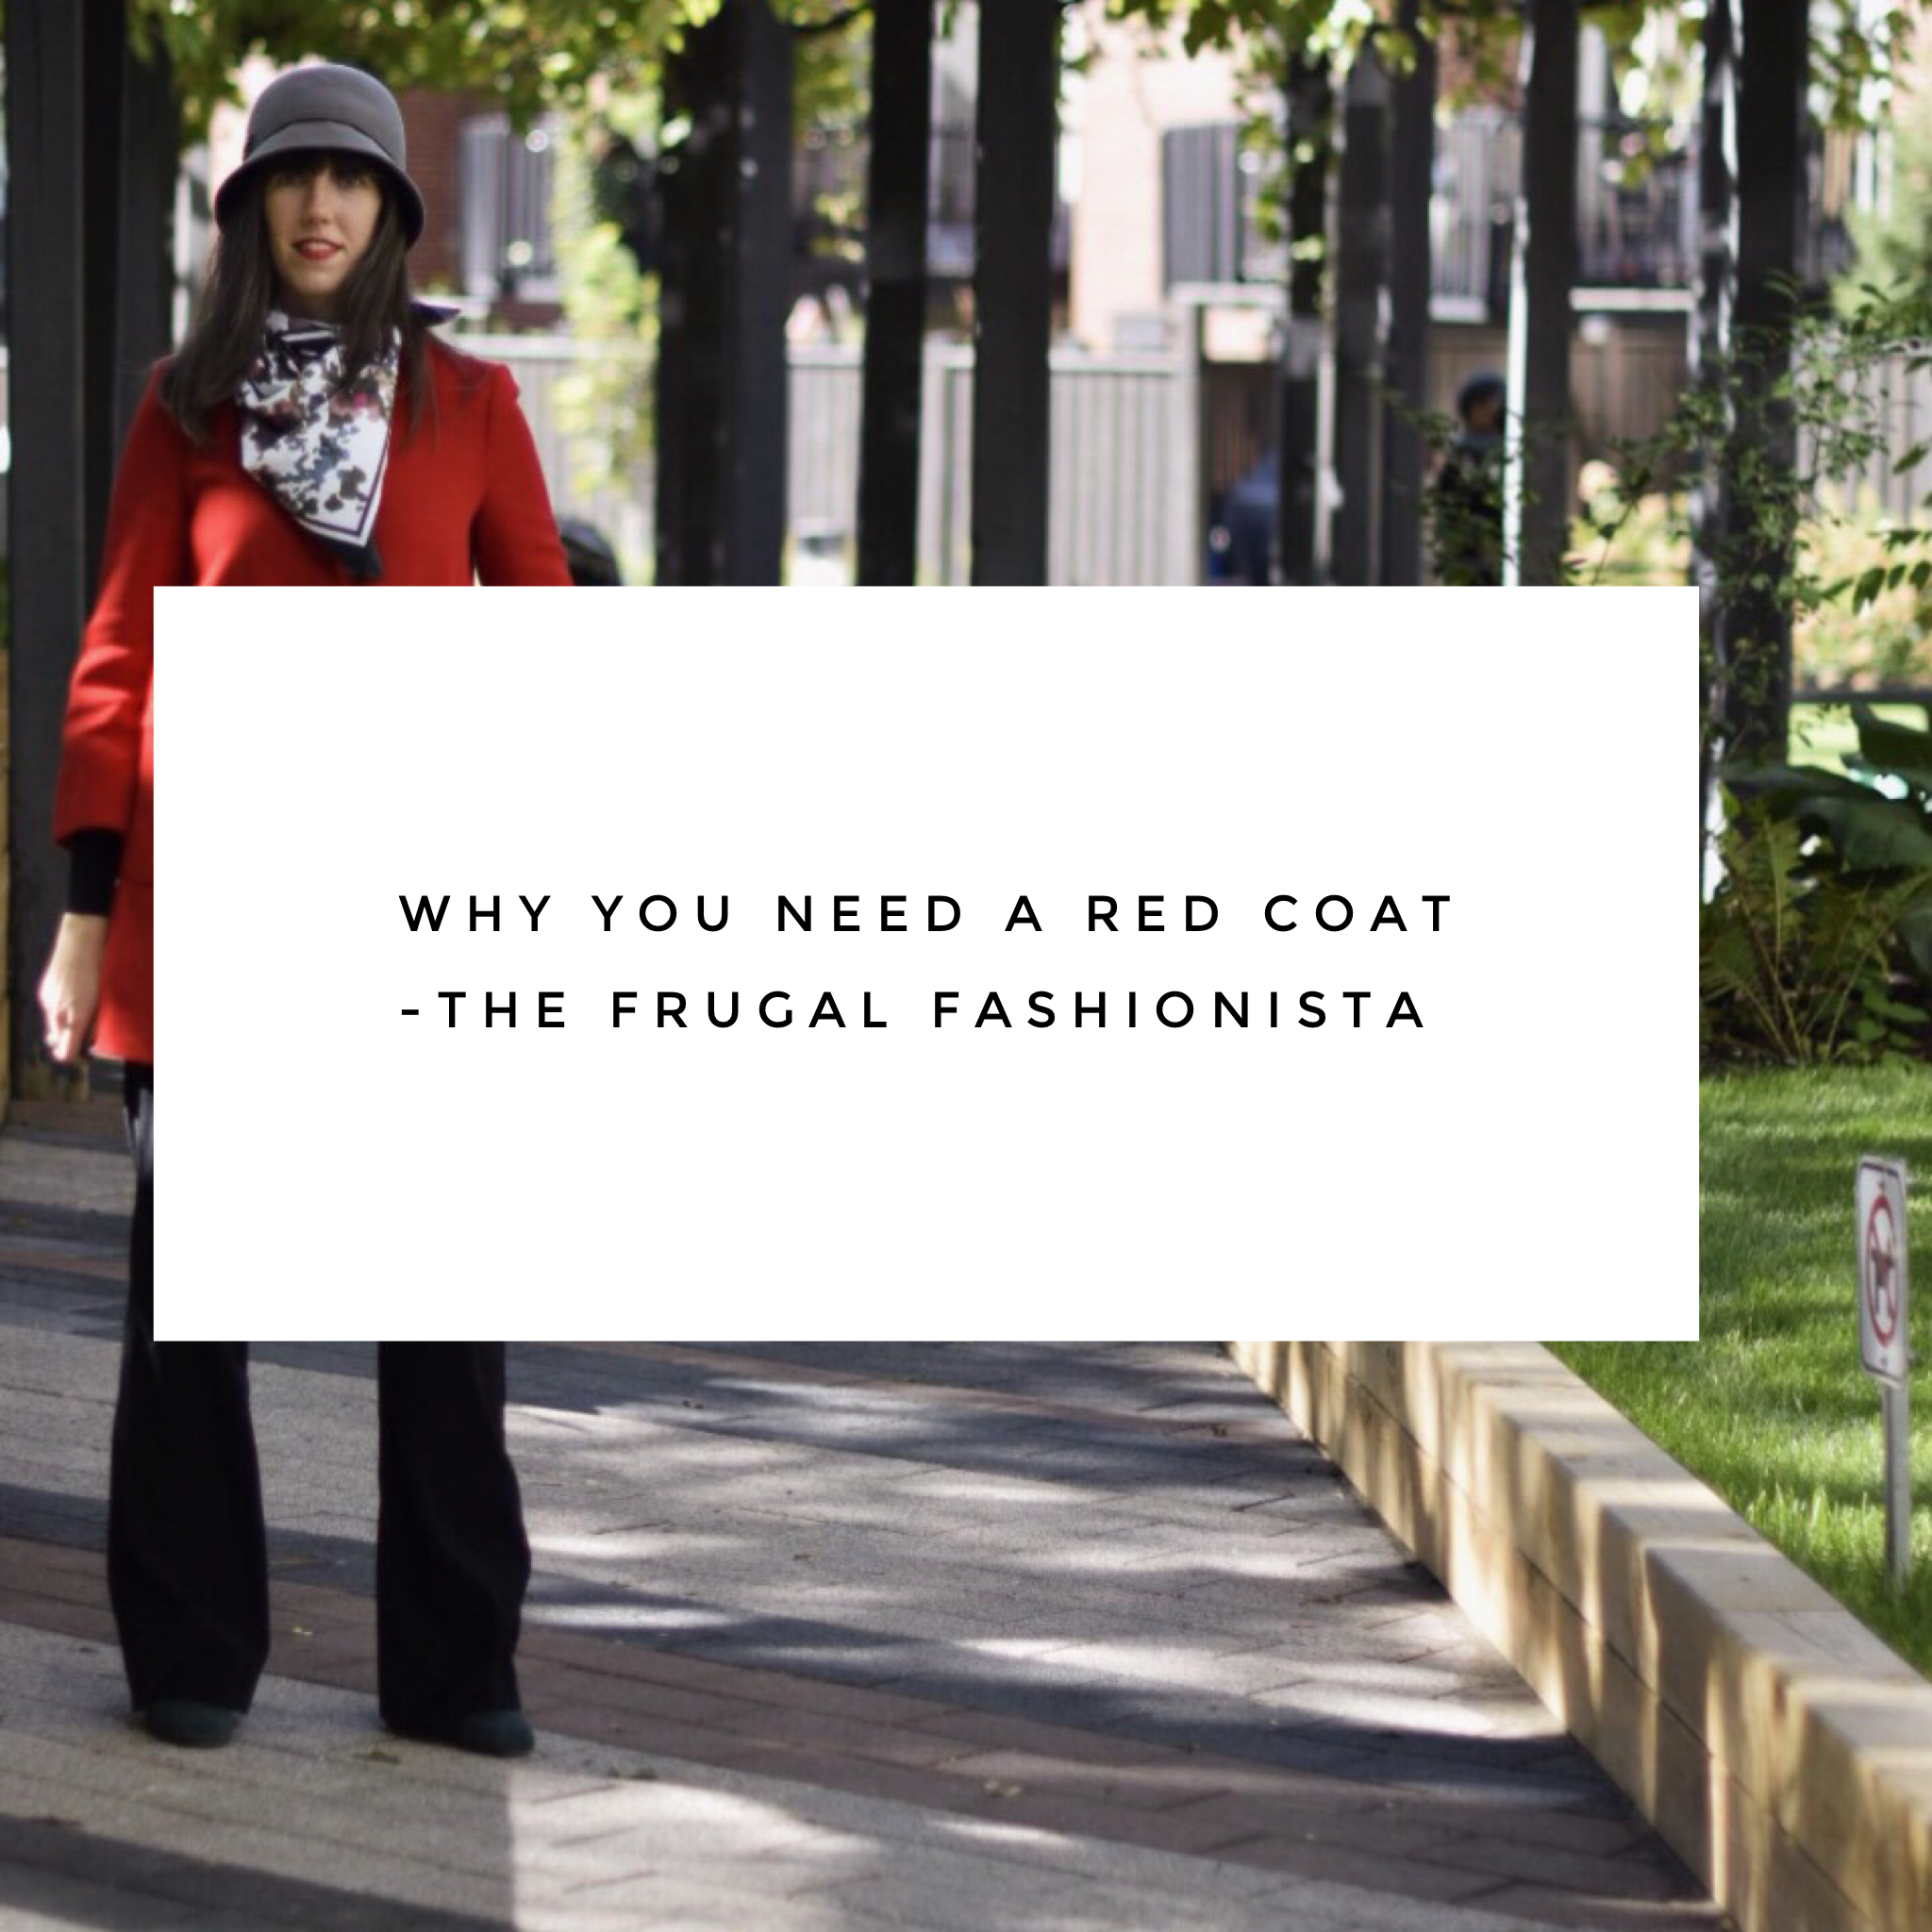 The Frugal Fashionista: Why You Need A Red Coat